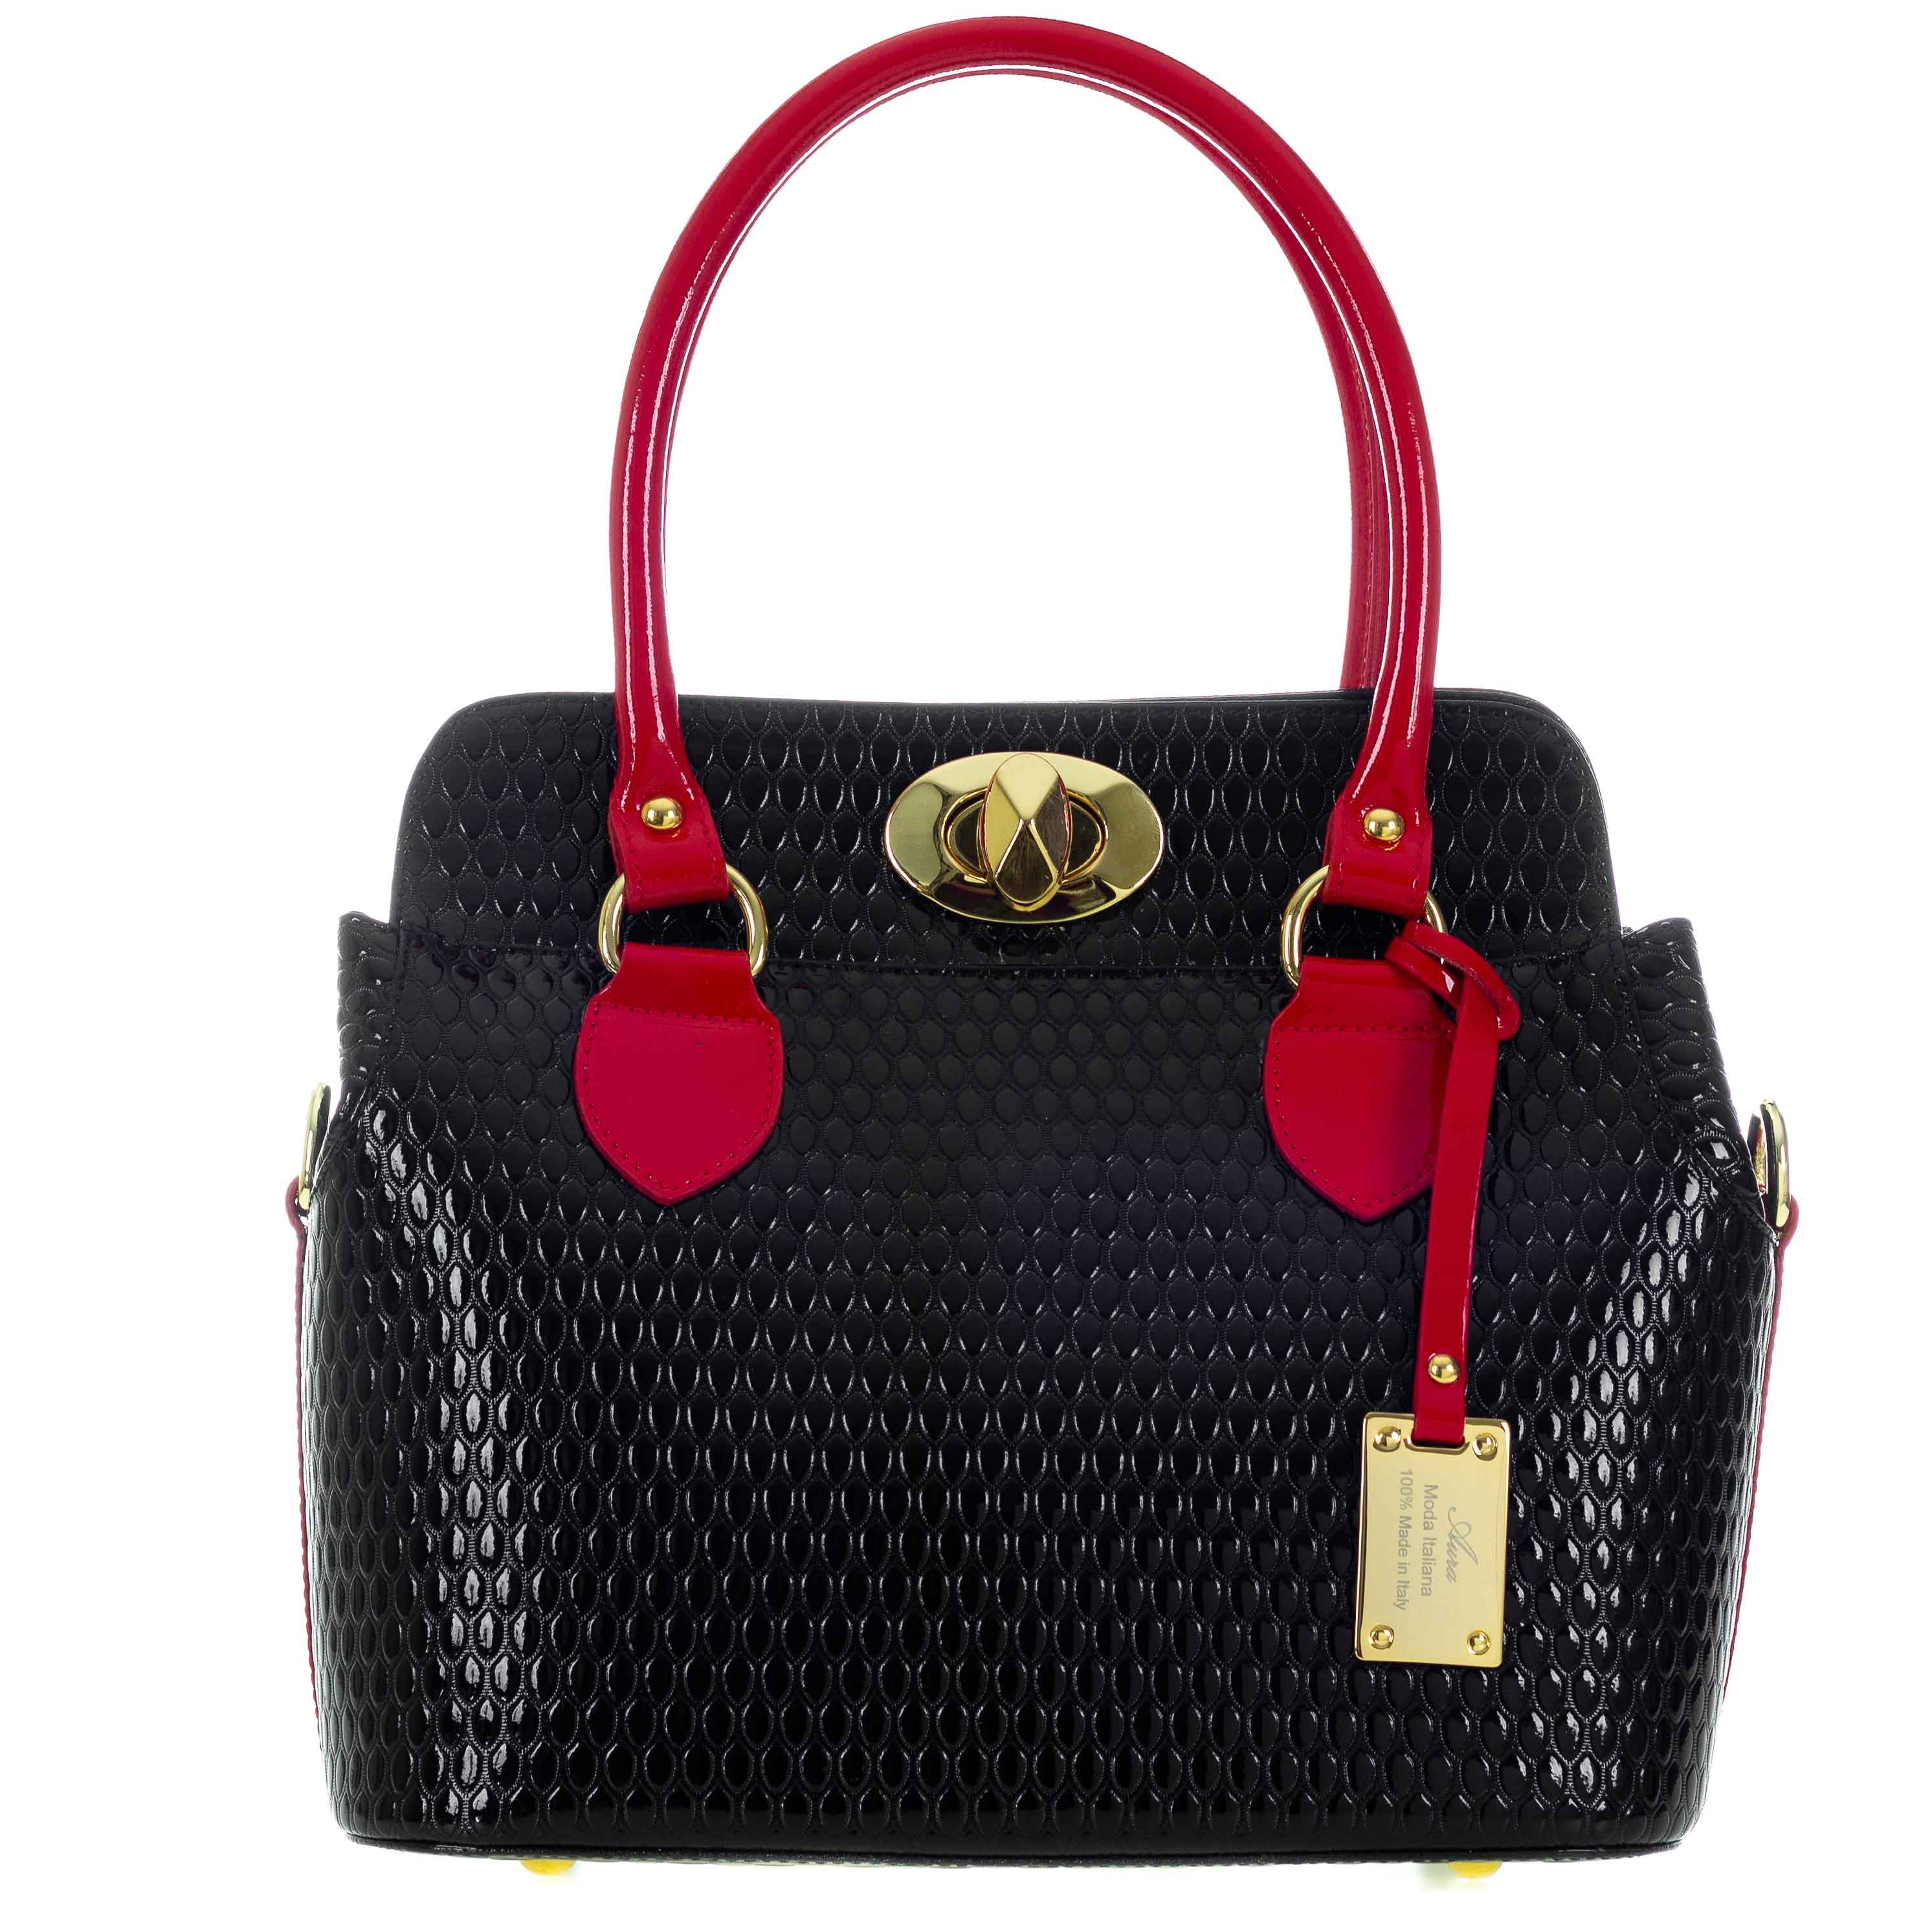 f8d5e1b798cf2 AURA Italian Made Black & Red Patent Leather Structured Tote Handbag. Tap to  expand